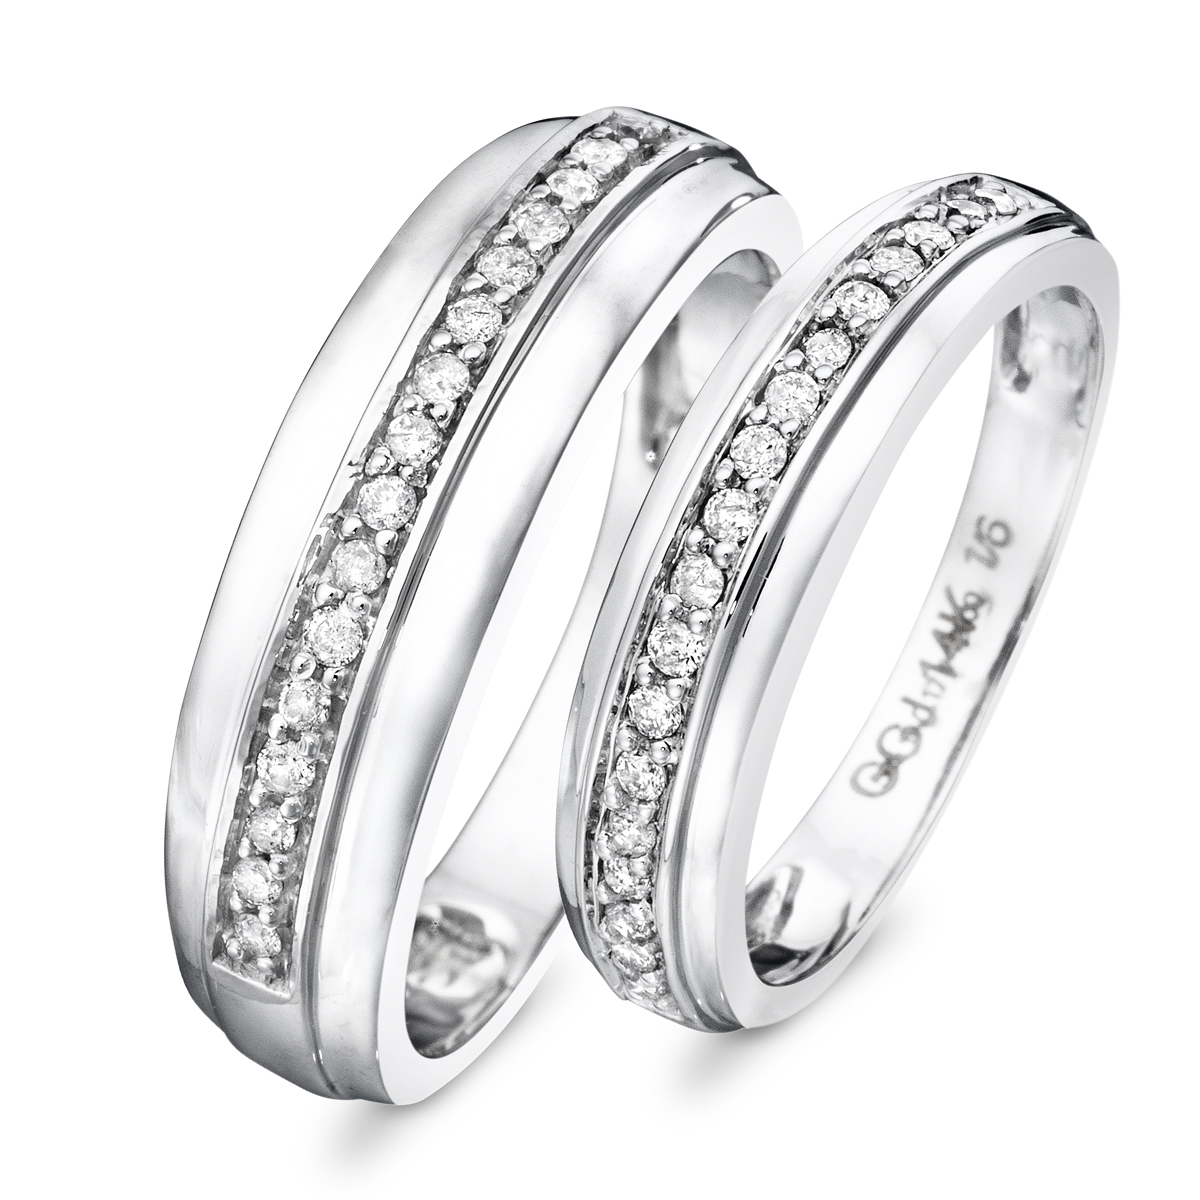 1/3 CT. T.W. Diamond His And Hers Wedding Rings 14K White Gold